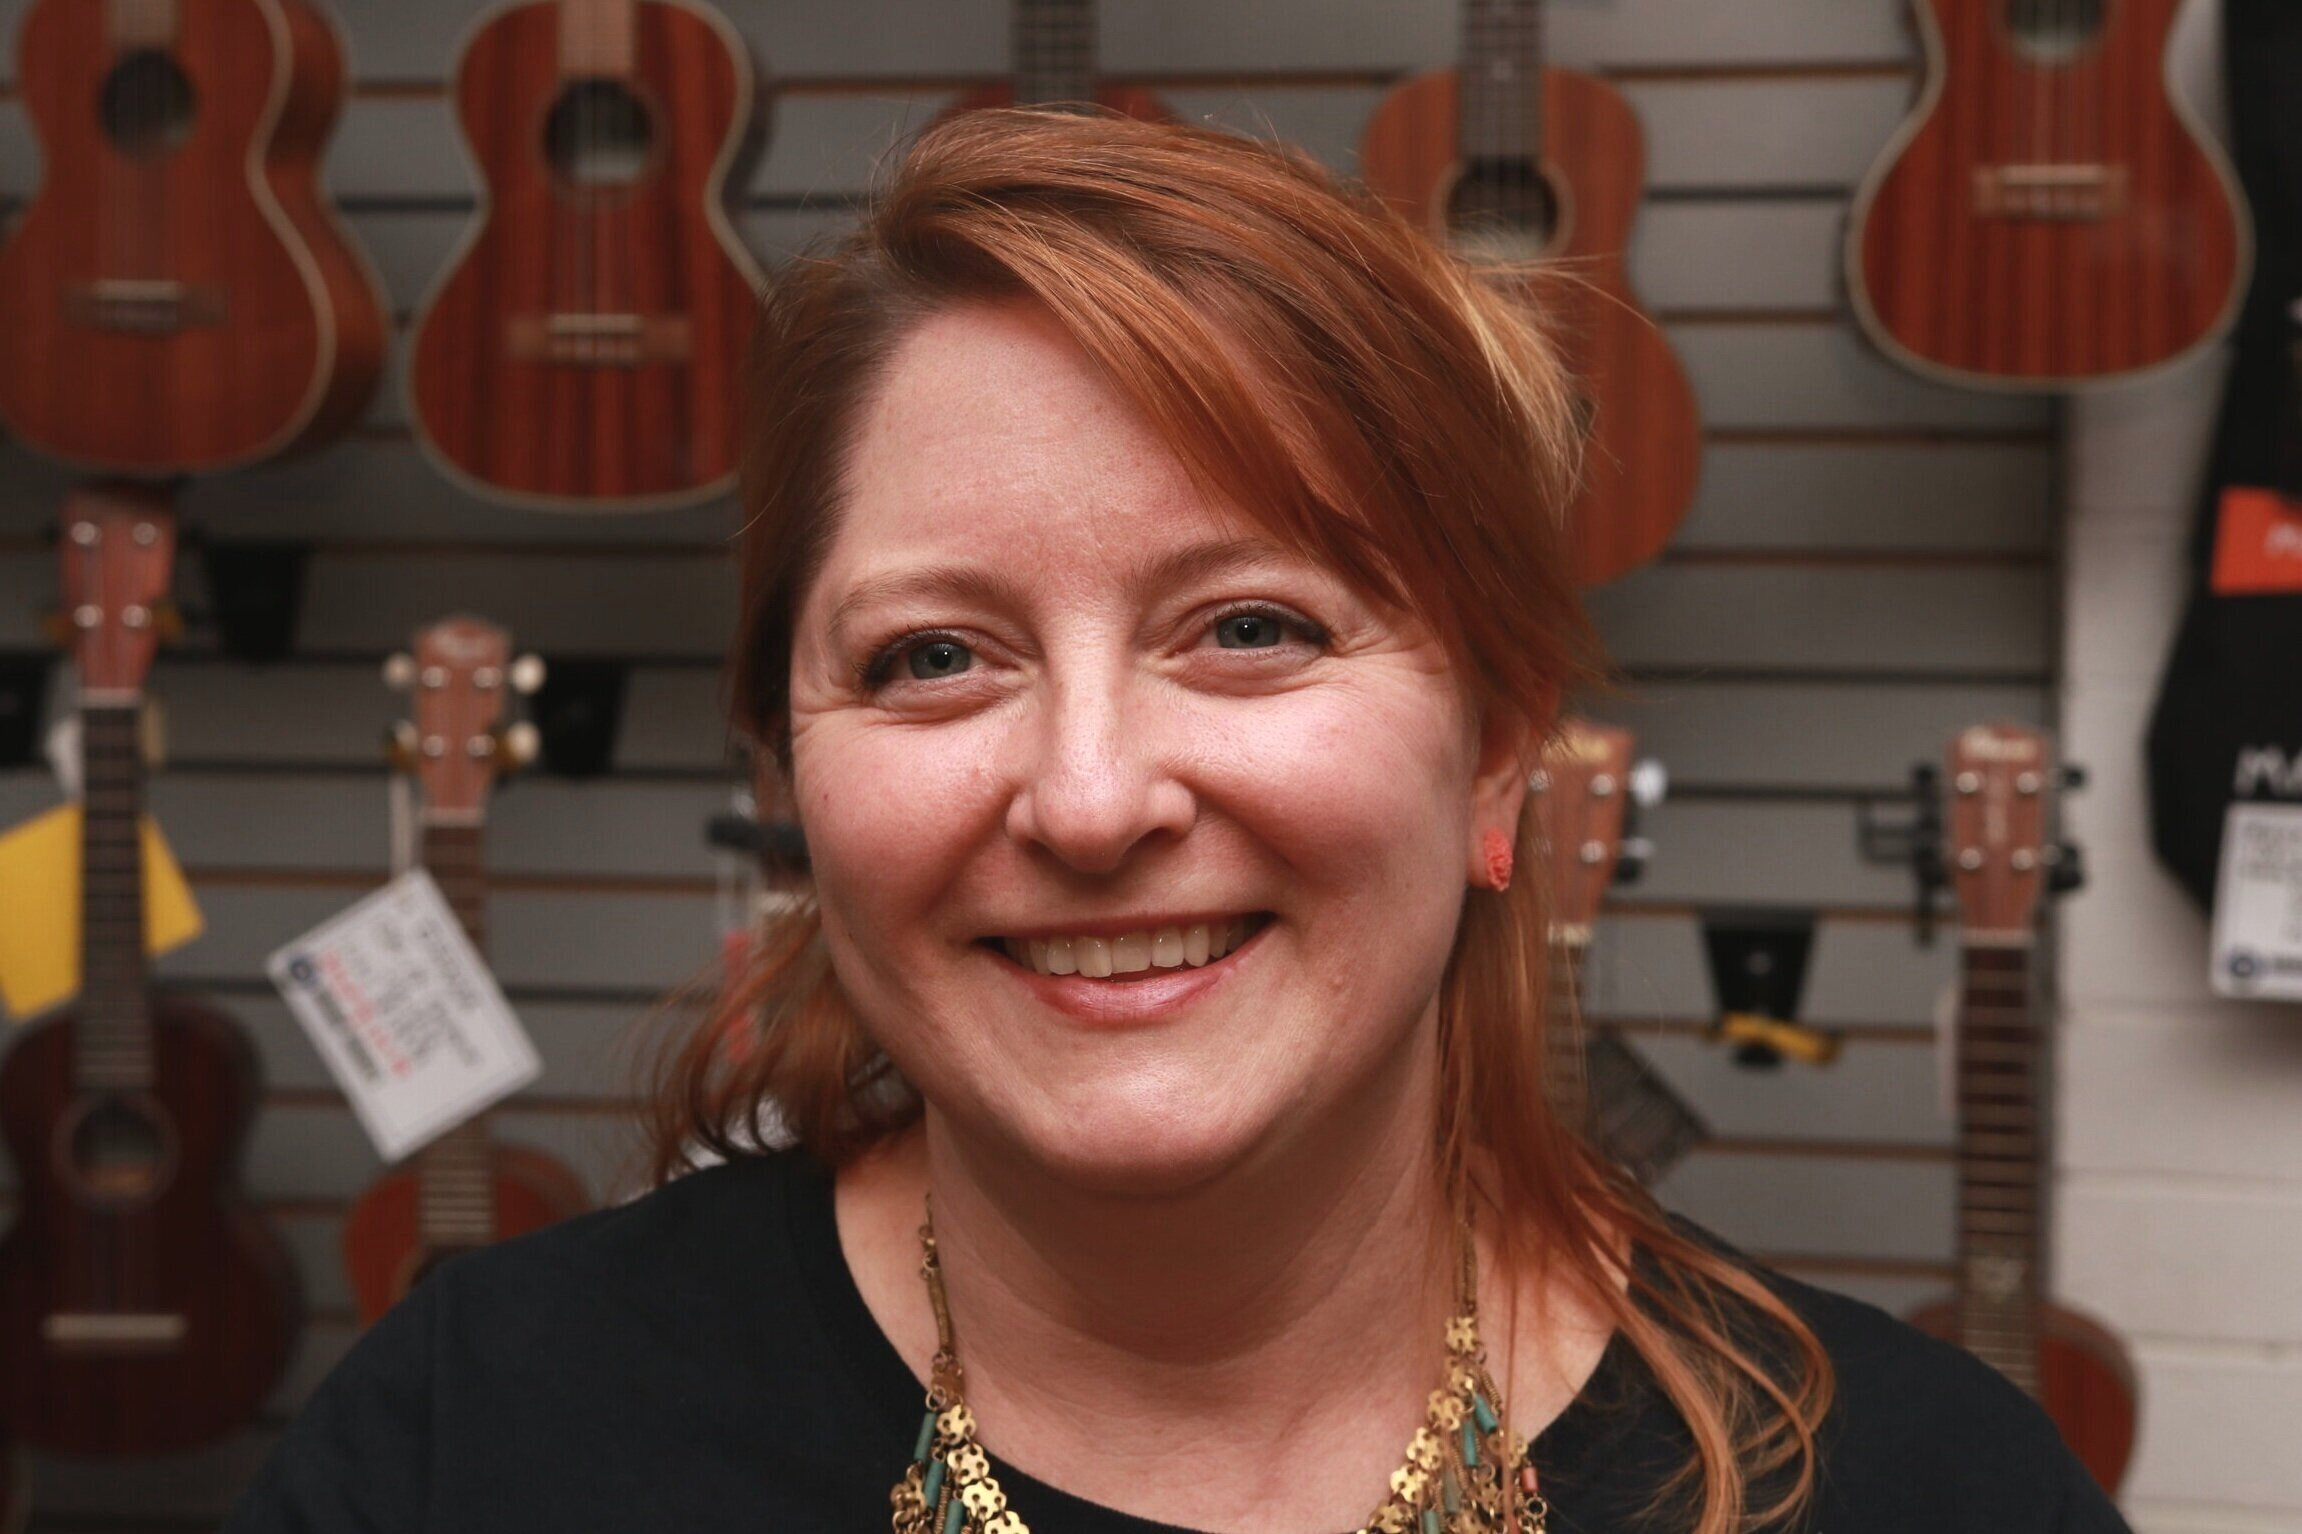 TIFFANY  Tiffany was born and raised in Virginia, in the Shenandoah Valley. In addition to her organizational prowess here at Rockin' Robbie's, Tiffany is also a skilled artist specializing in upcycled materials. She also founded two businesses, Tiff's & Cheryl's Crate Escape dog walking service and The Art of Cataloging. Tiffany has worked in the sales and merchandising world for more than a decade. In her off-time, she enjoys beachcombing, photography, hiking, camping, road trips, and stargazing. Stop by and say hi, Tiffany is happy to help.